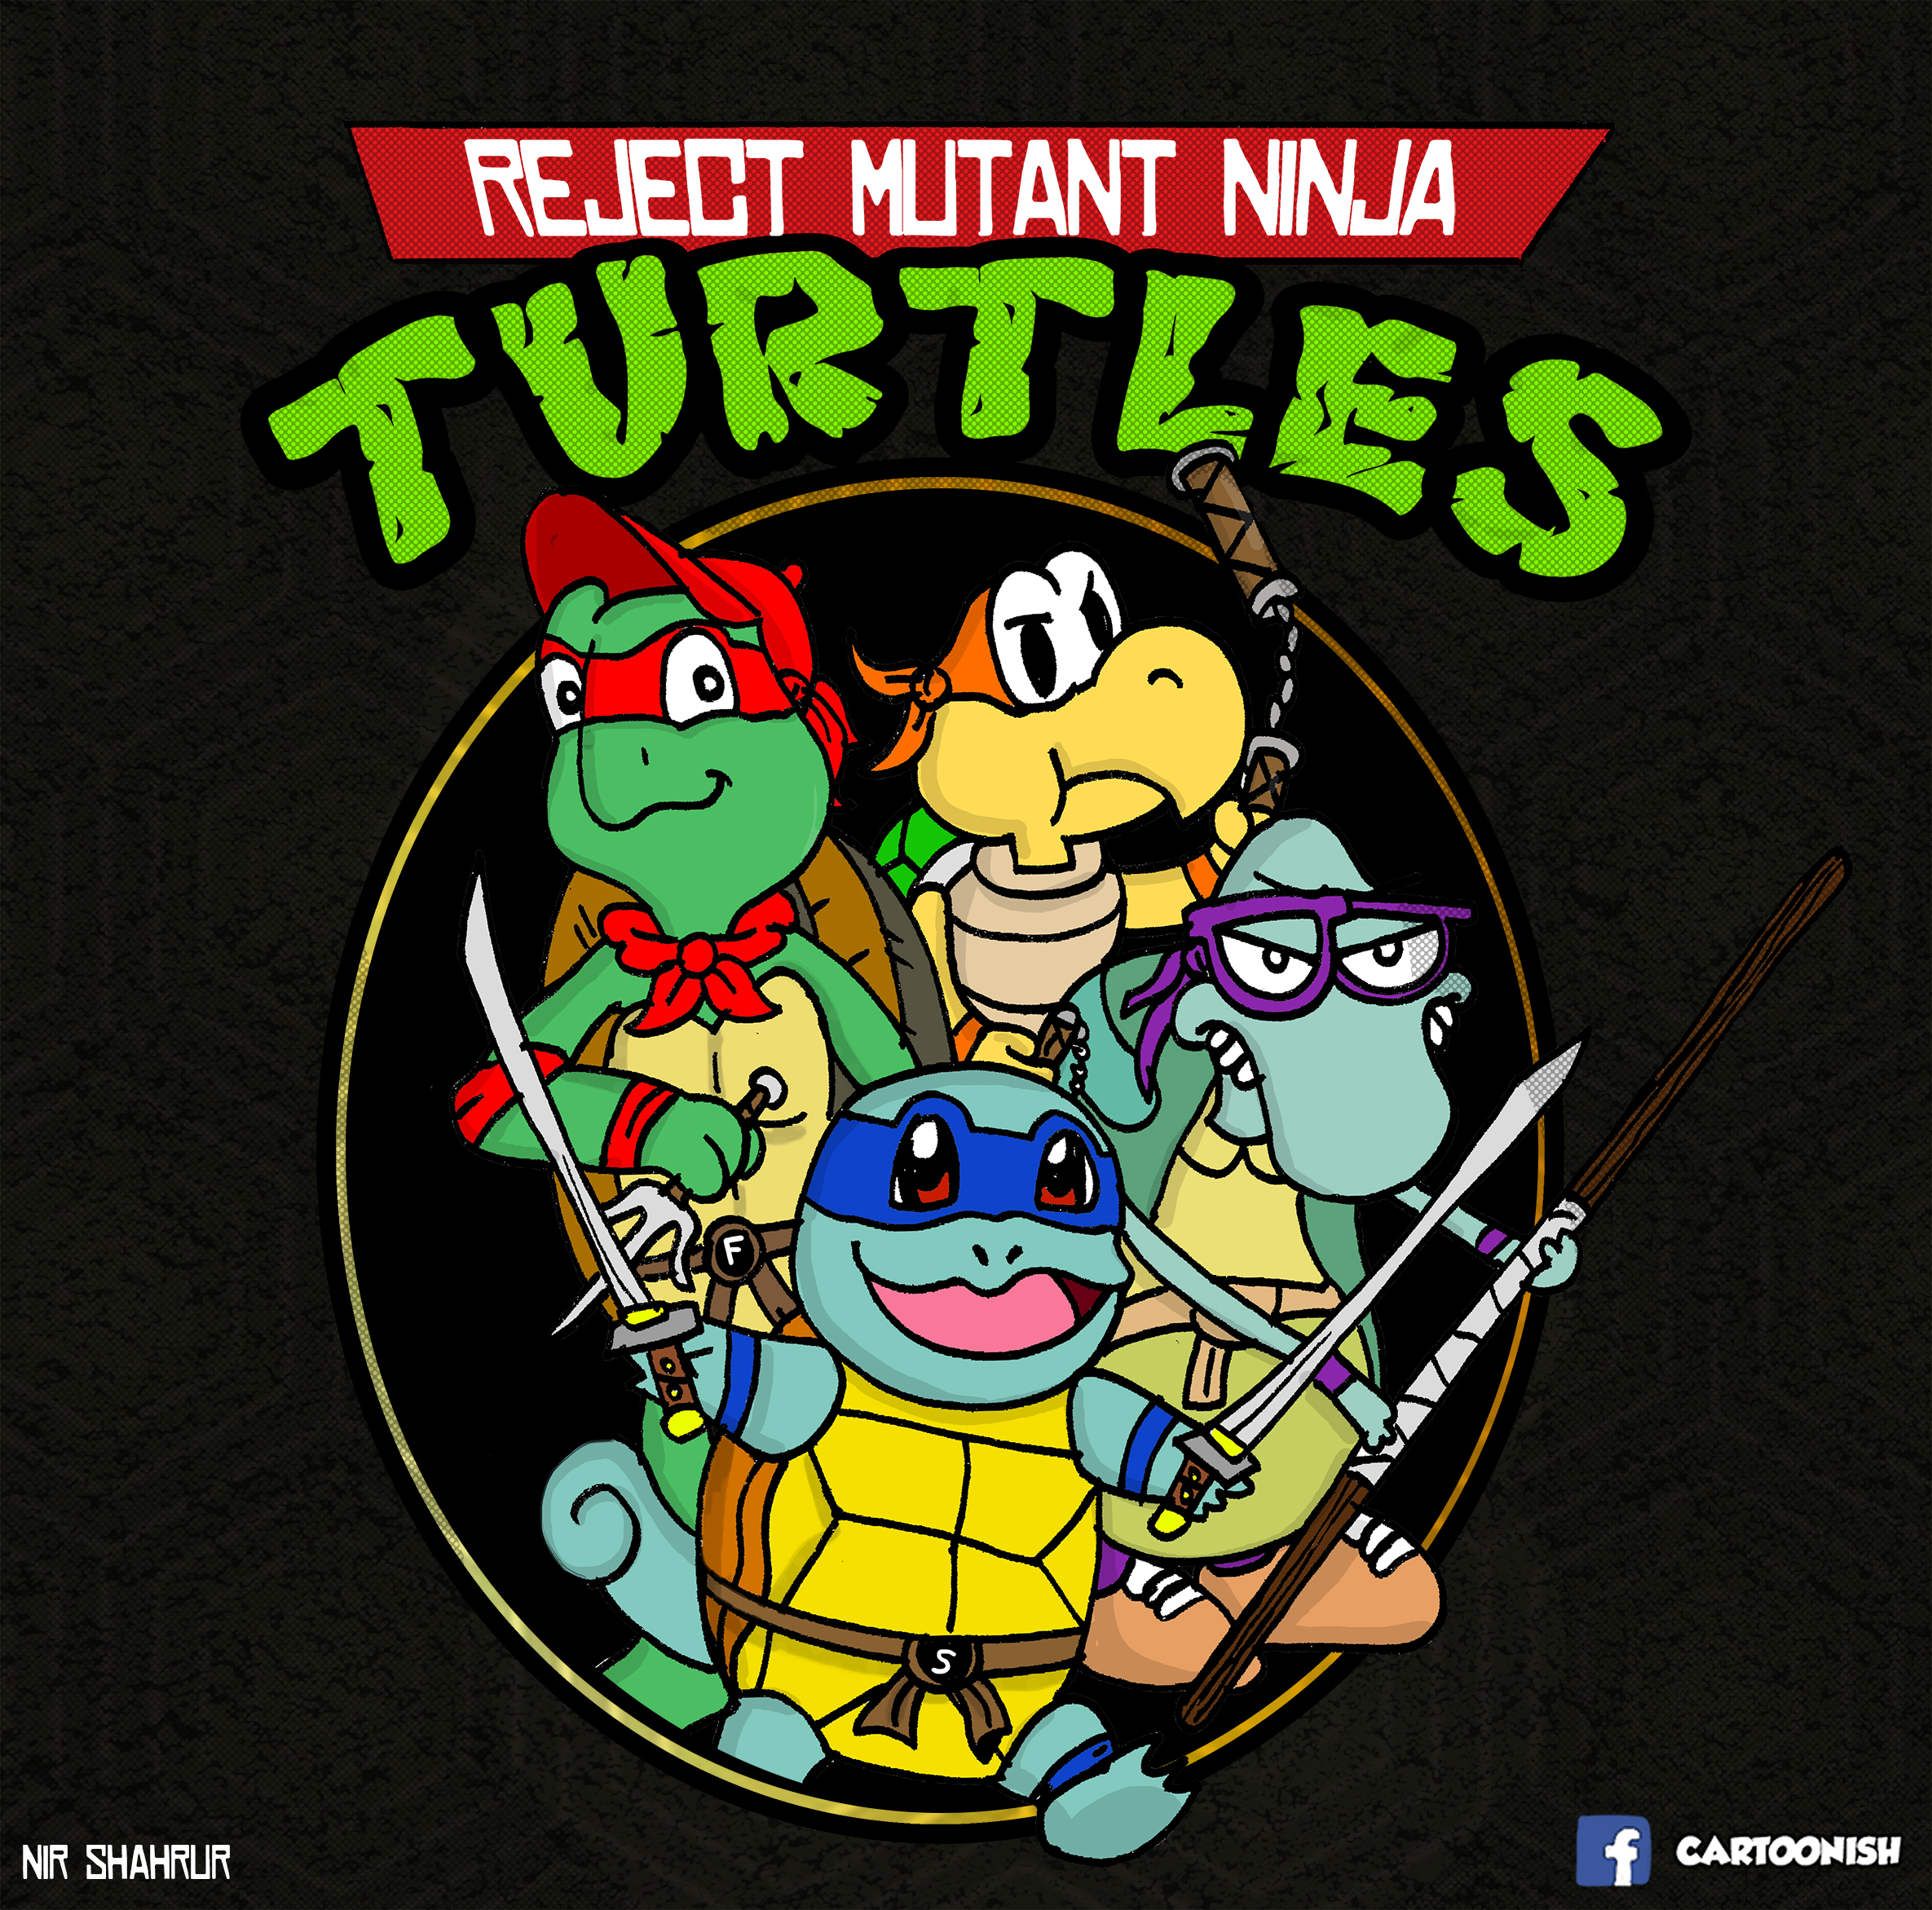 Reject Mutant Ninja Turtles